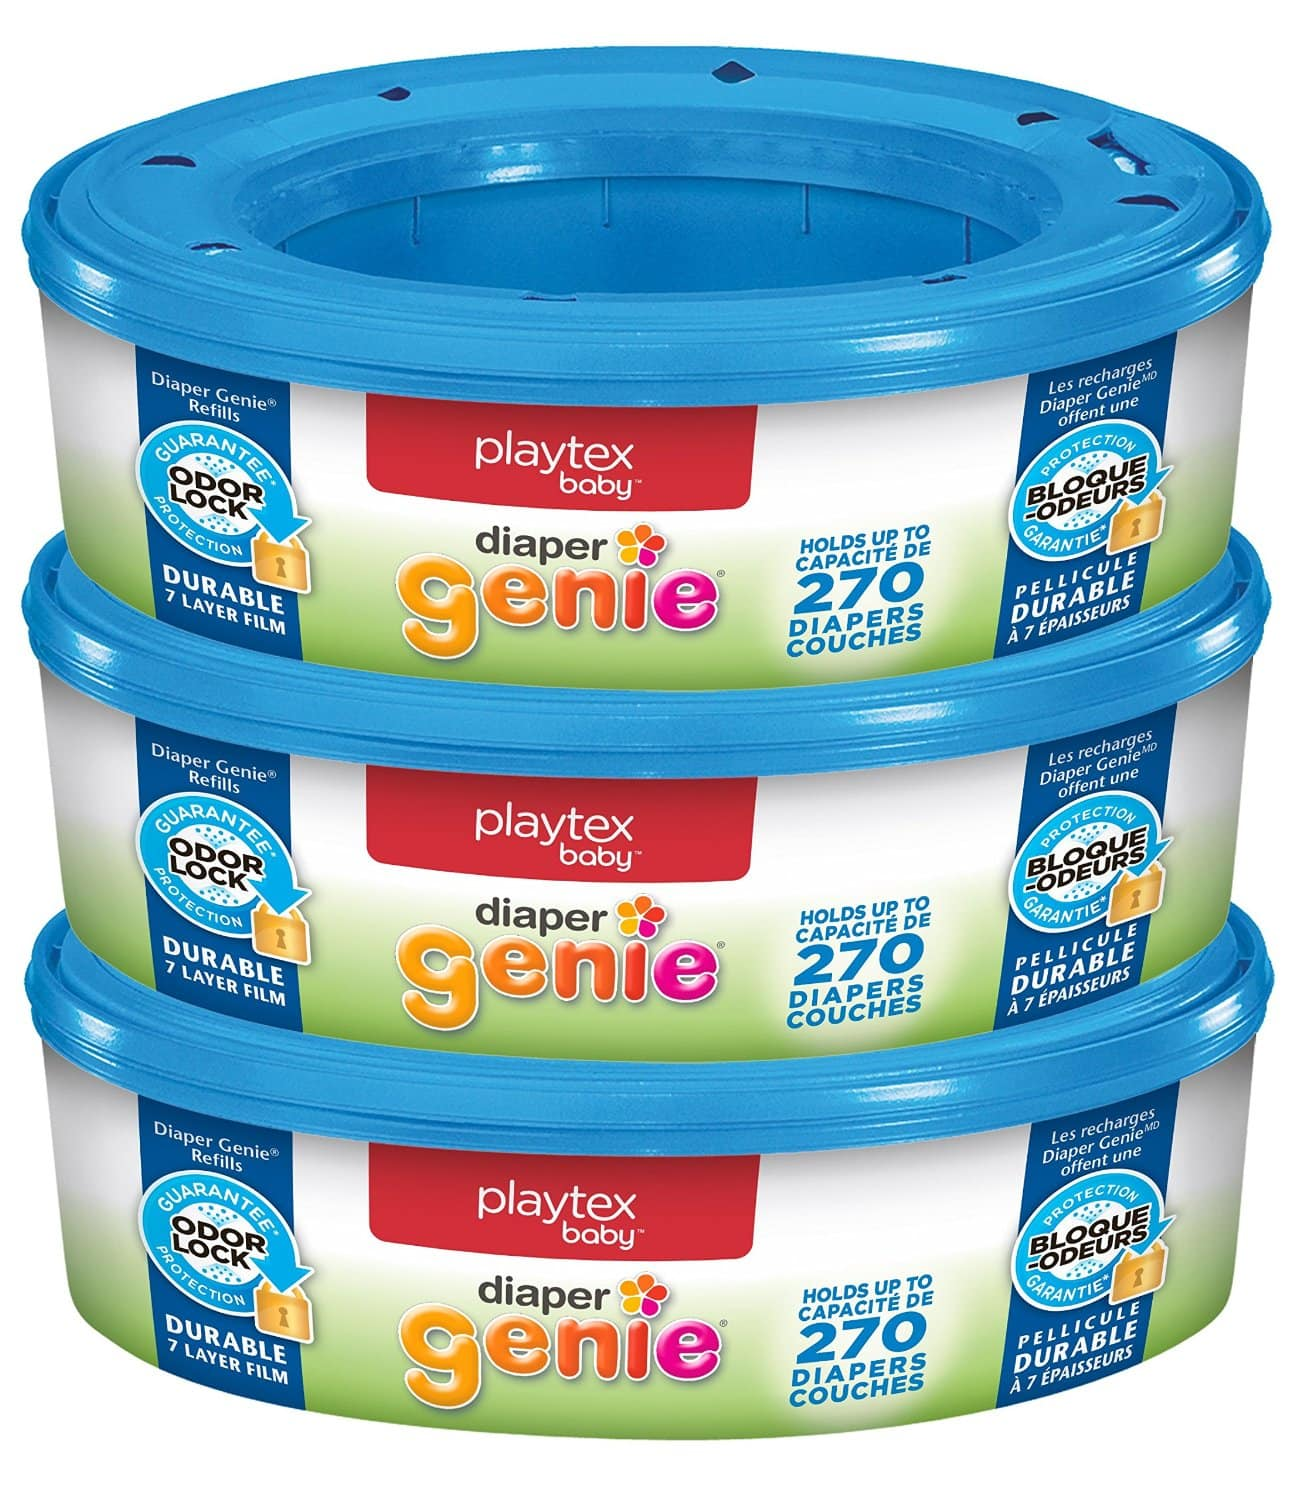 3-Pack of 270-Count Playtex Diaper Genie Refill $14.79 + Free S/H @Amazon